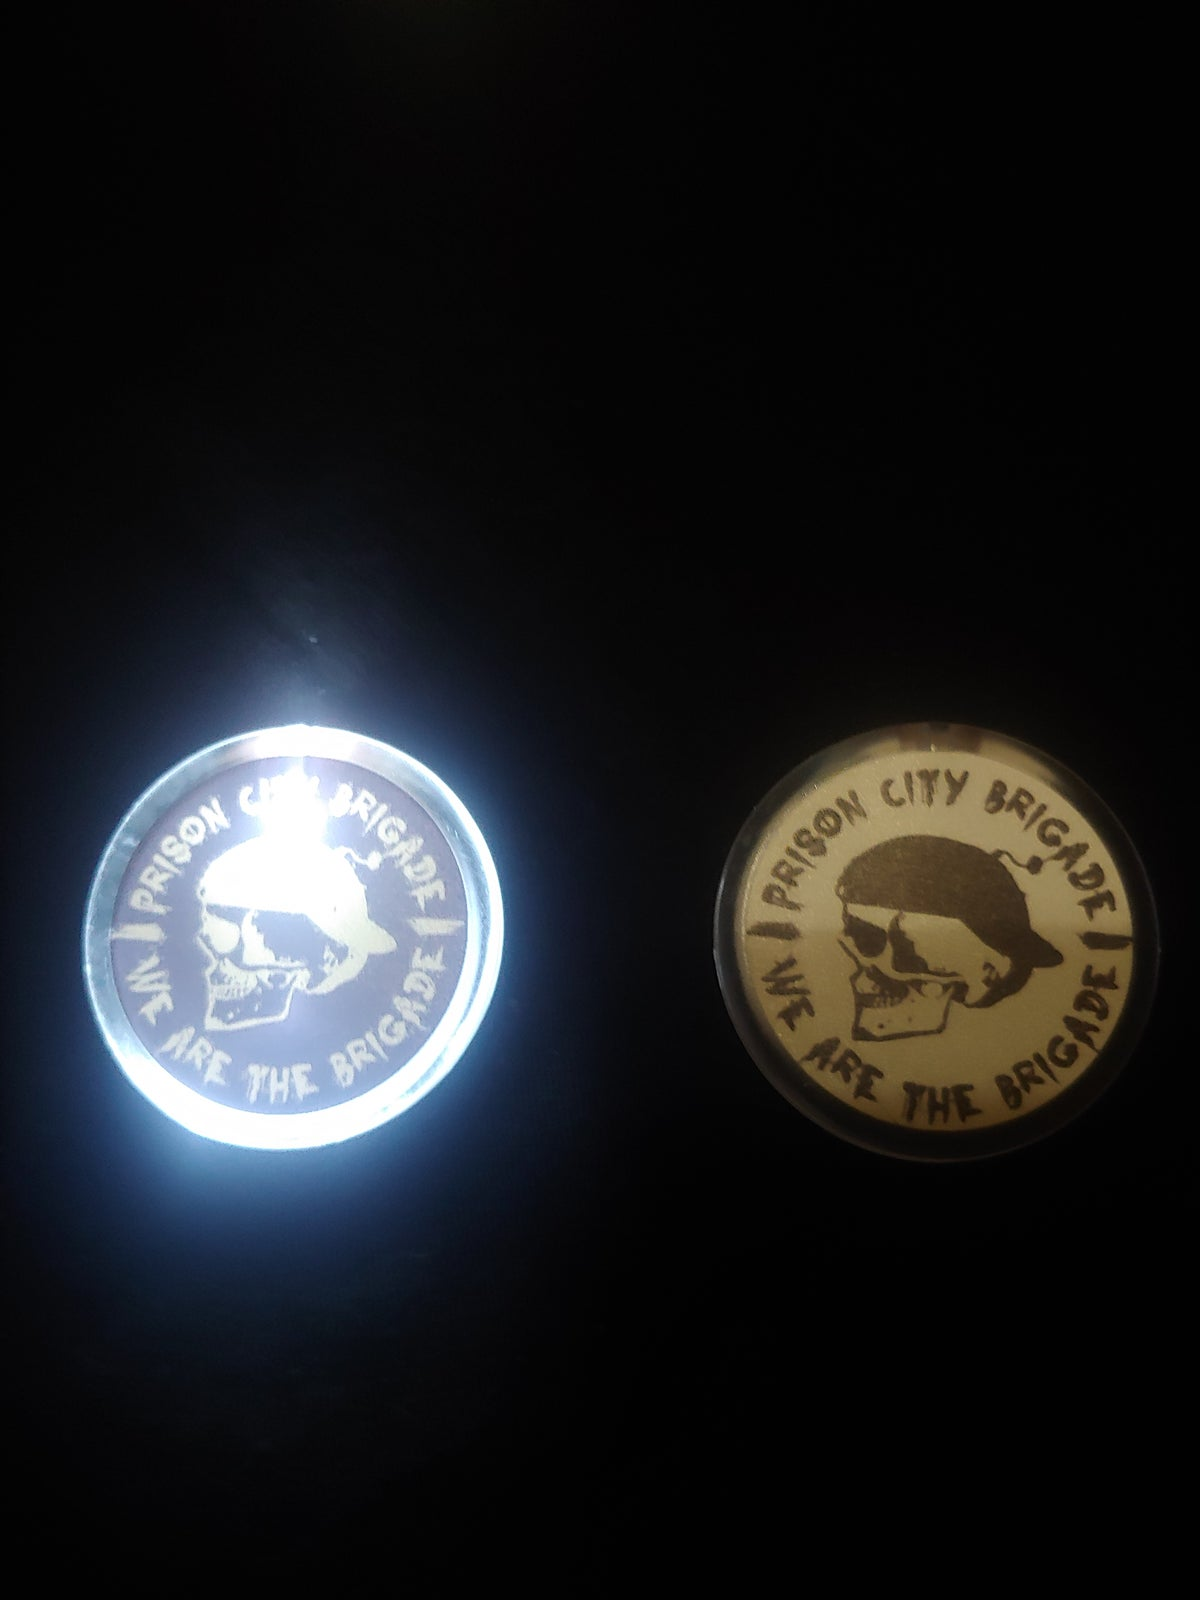 Prison City Brigade Light Up Pins